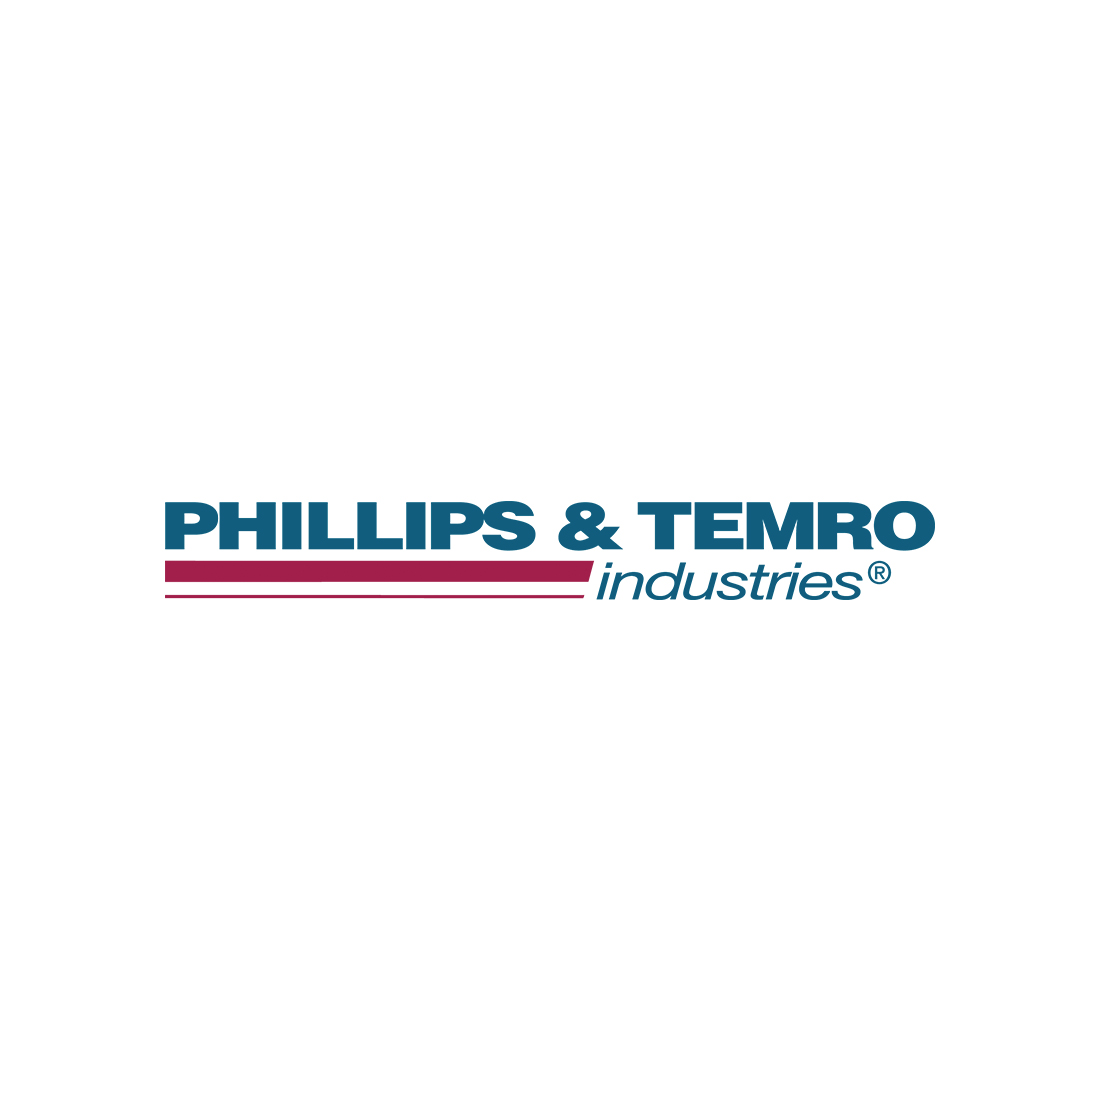 Phillips & Temro Industries